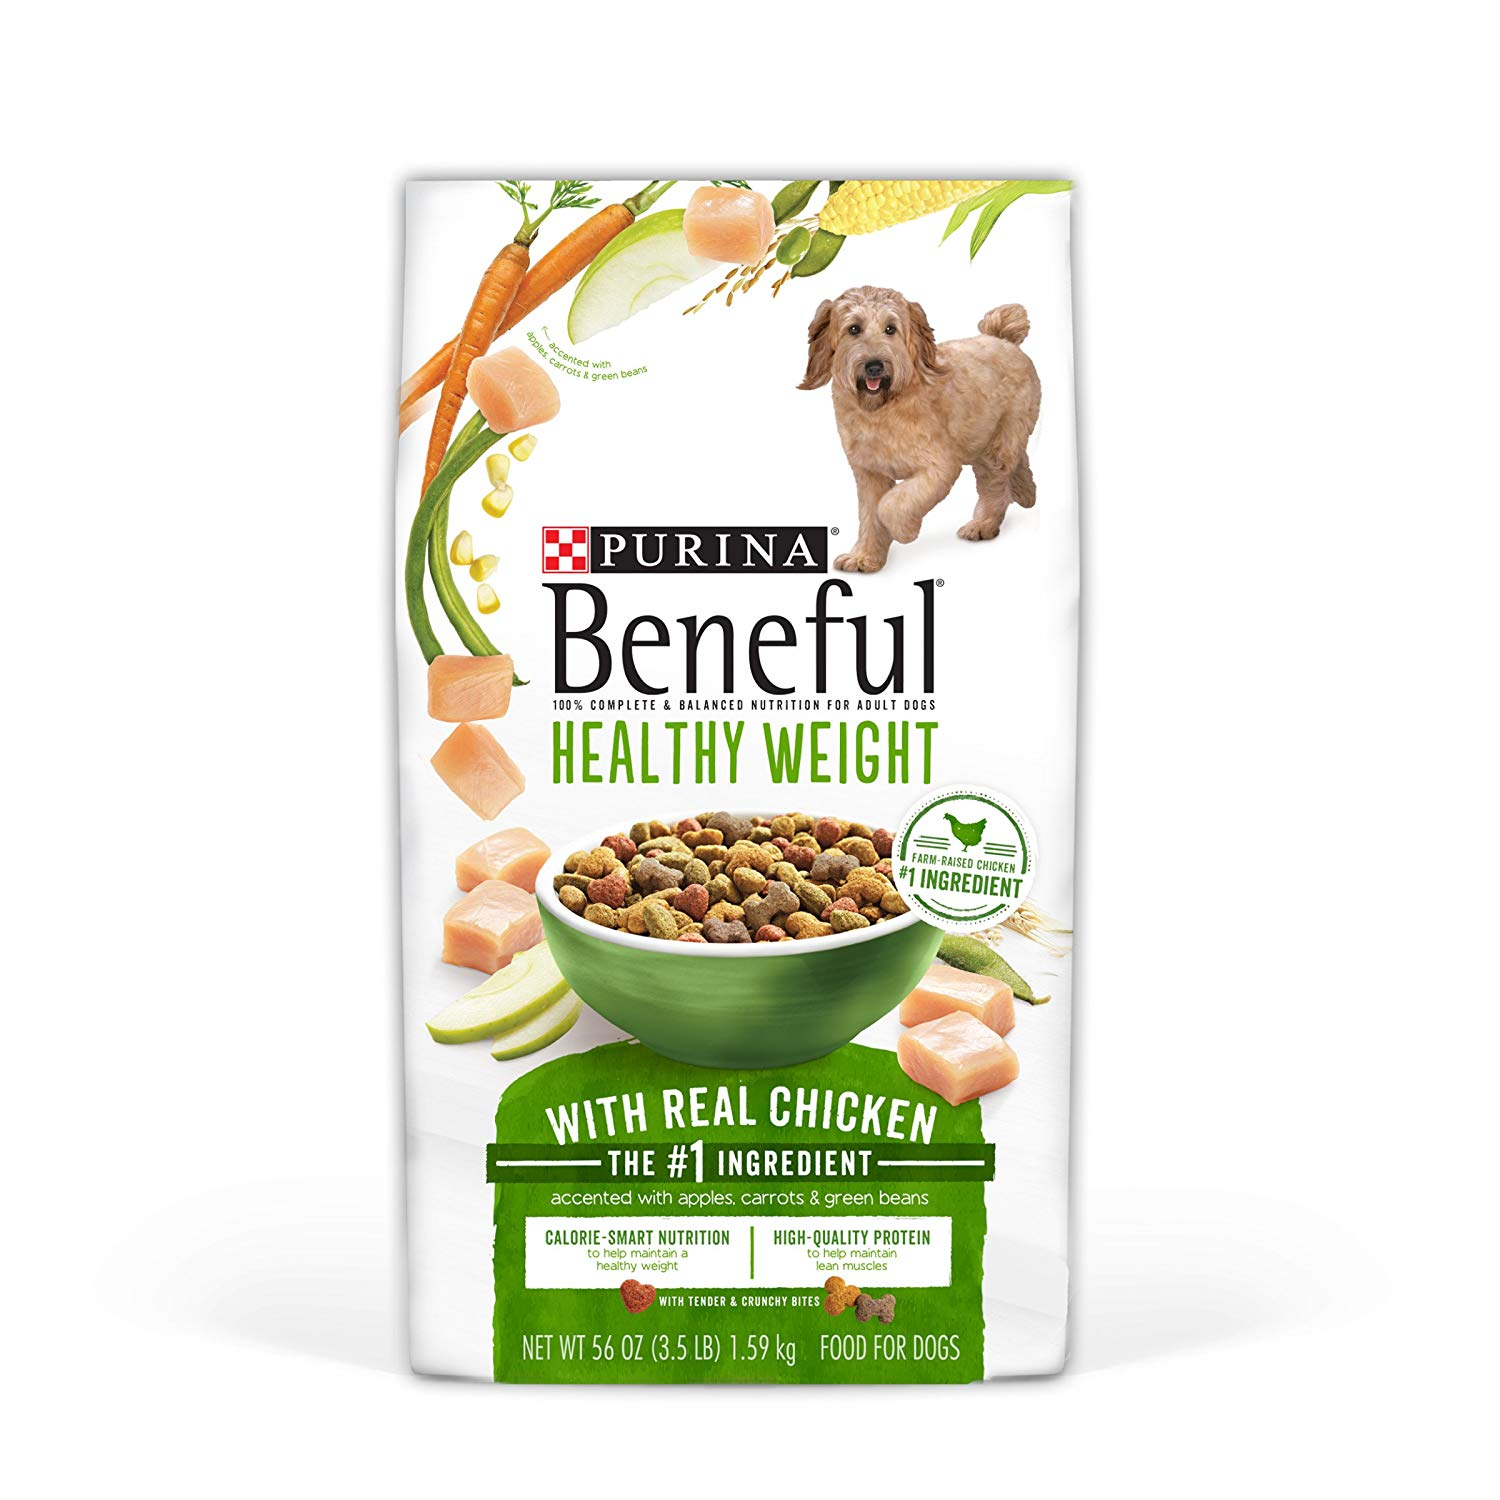 Purina Beneful Healthy Weight with Real Chicken Adult Dry Dog Food - Four (4) 3.5 lb. Bags